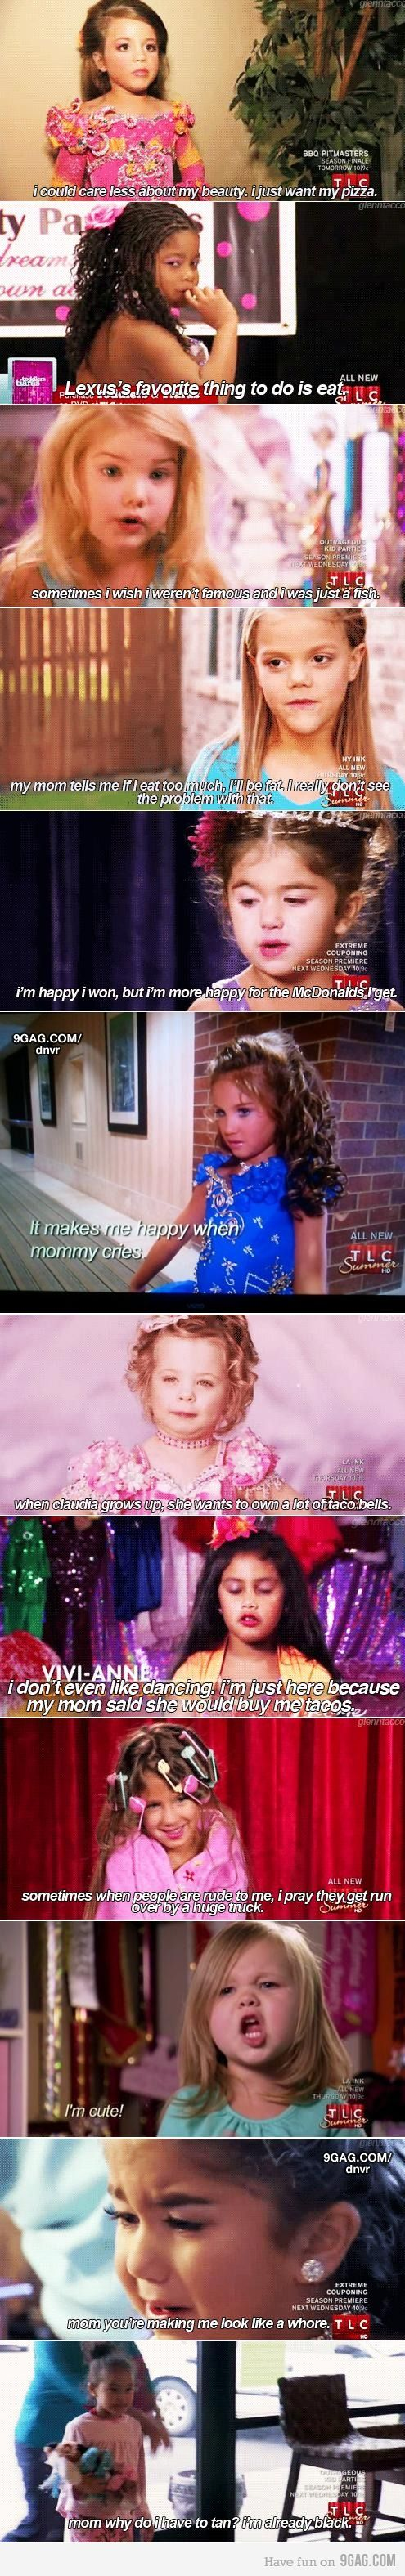 Haha!Little Girls, Quote, Funny Stuff, Kids, Dance Moms, Toddlers, So Funny, Pageants, Tiaras